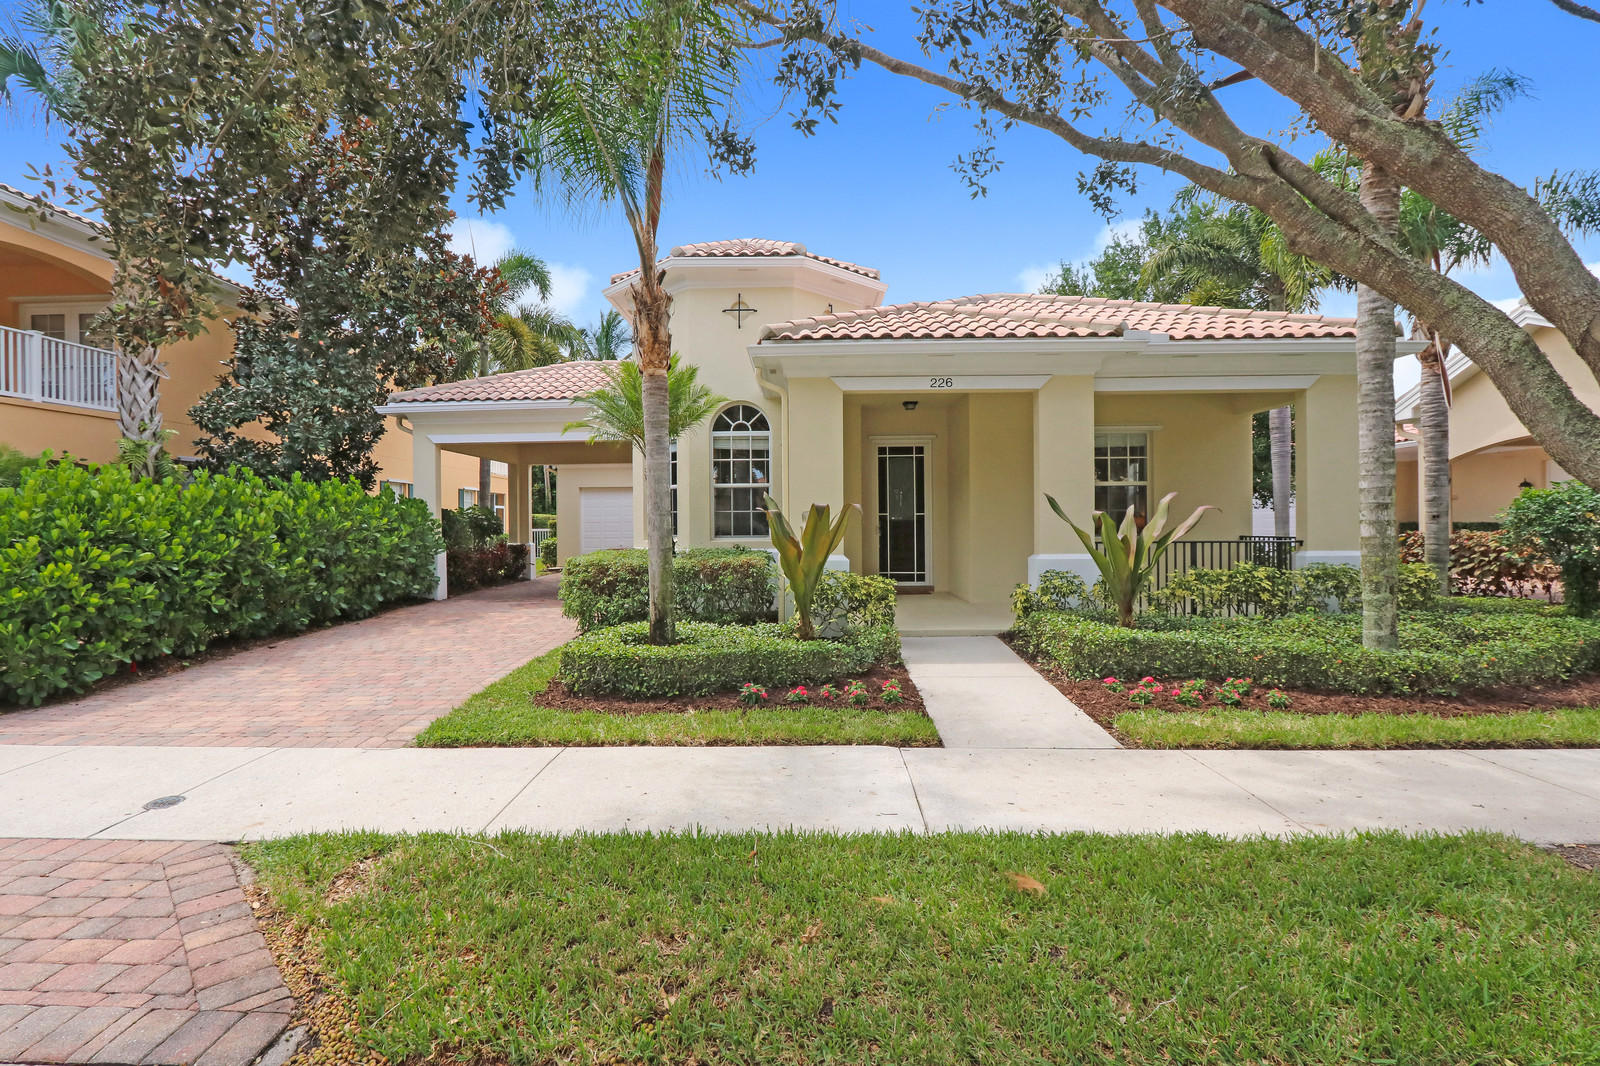 New Home for sale at 226 San Remo Drive in Jupiter